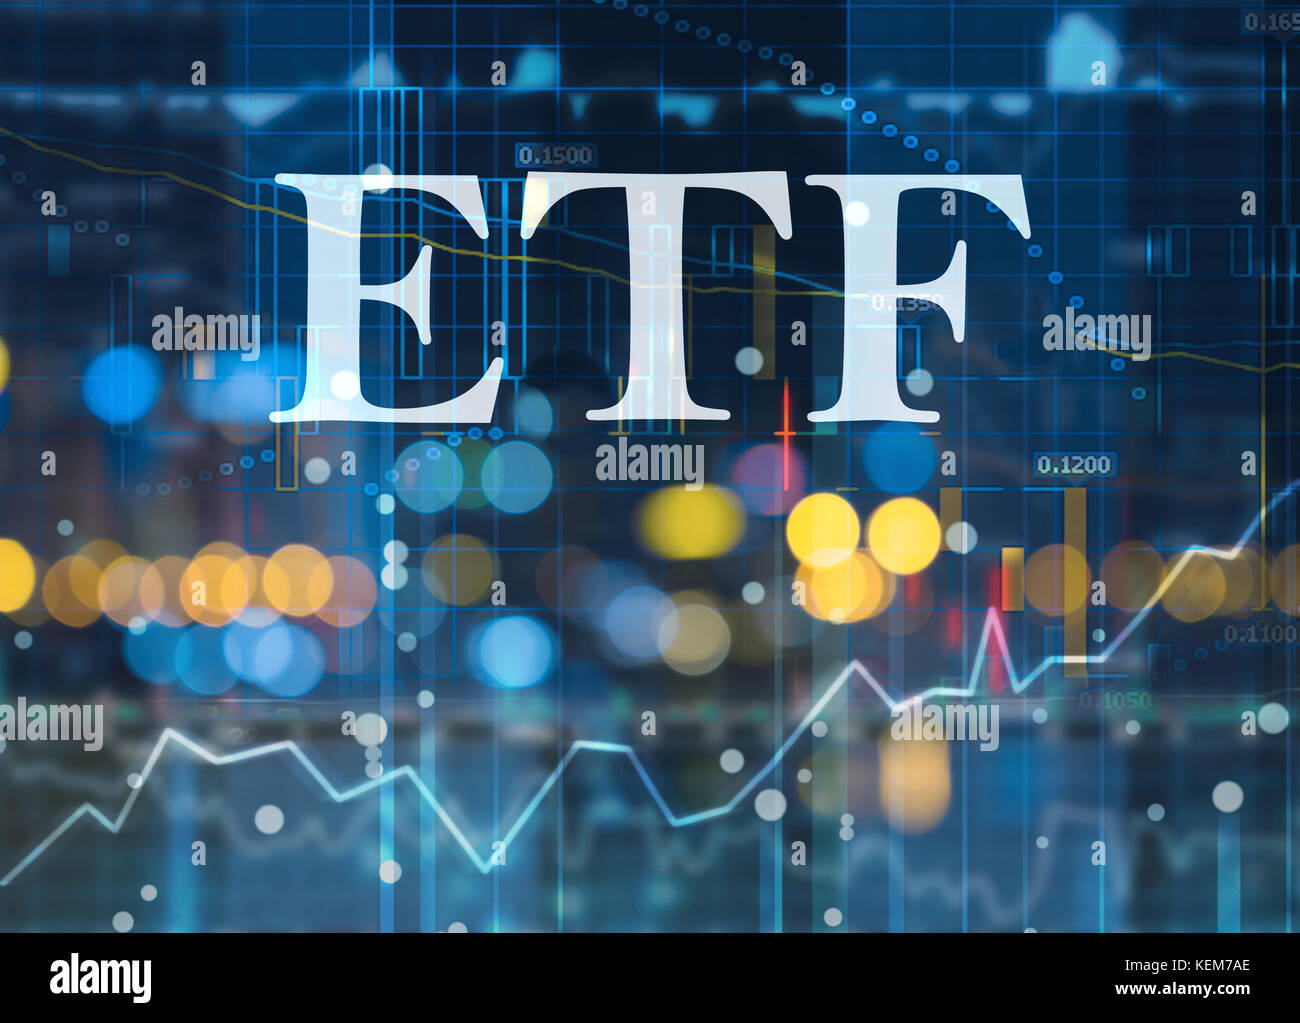 etf, exchange traded funds, passive investment in index funds on capital markets - Stock Image